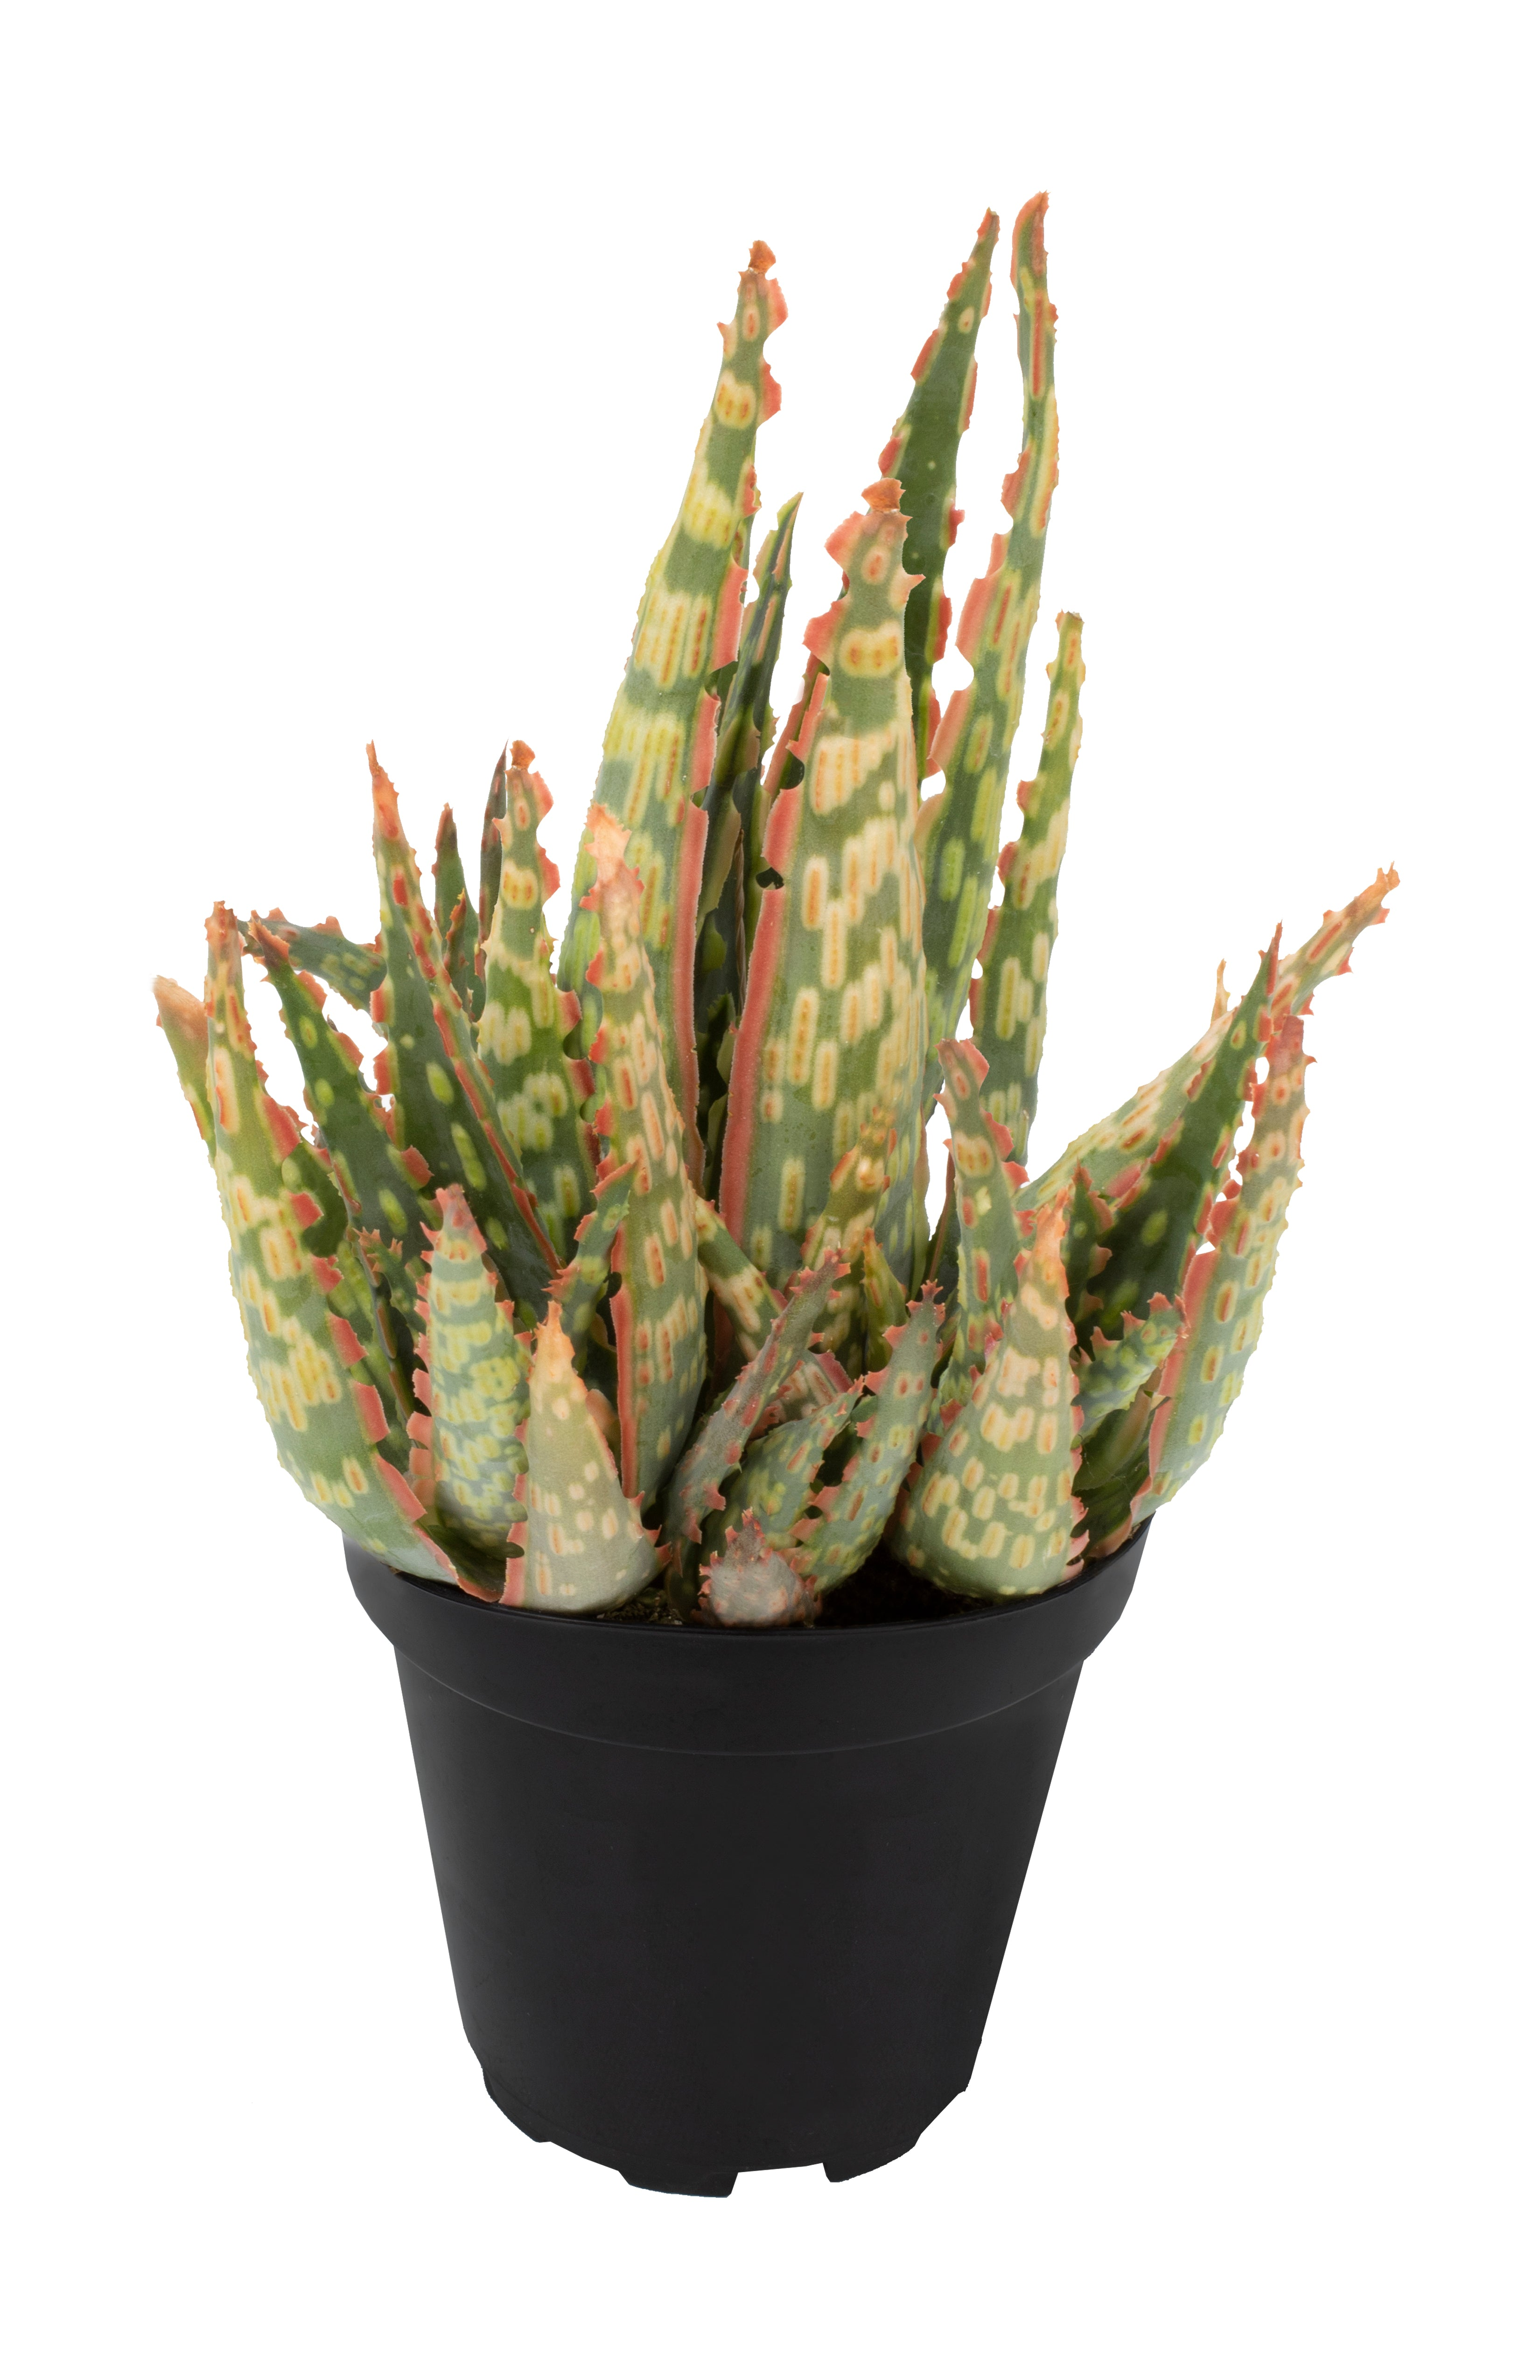 Aloe Krakatoa angle white background